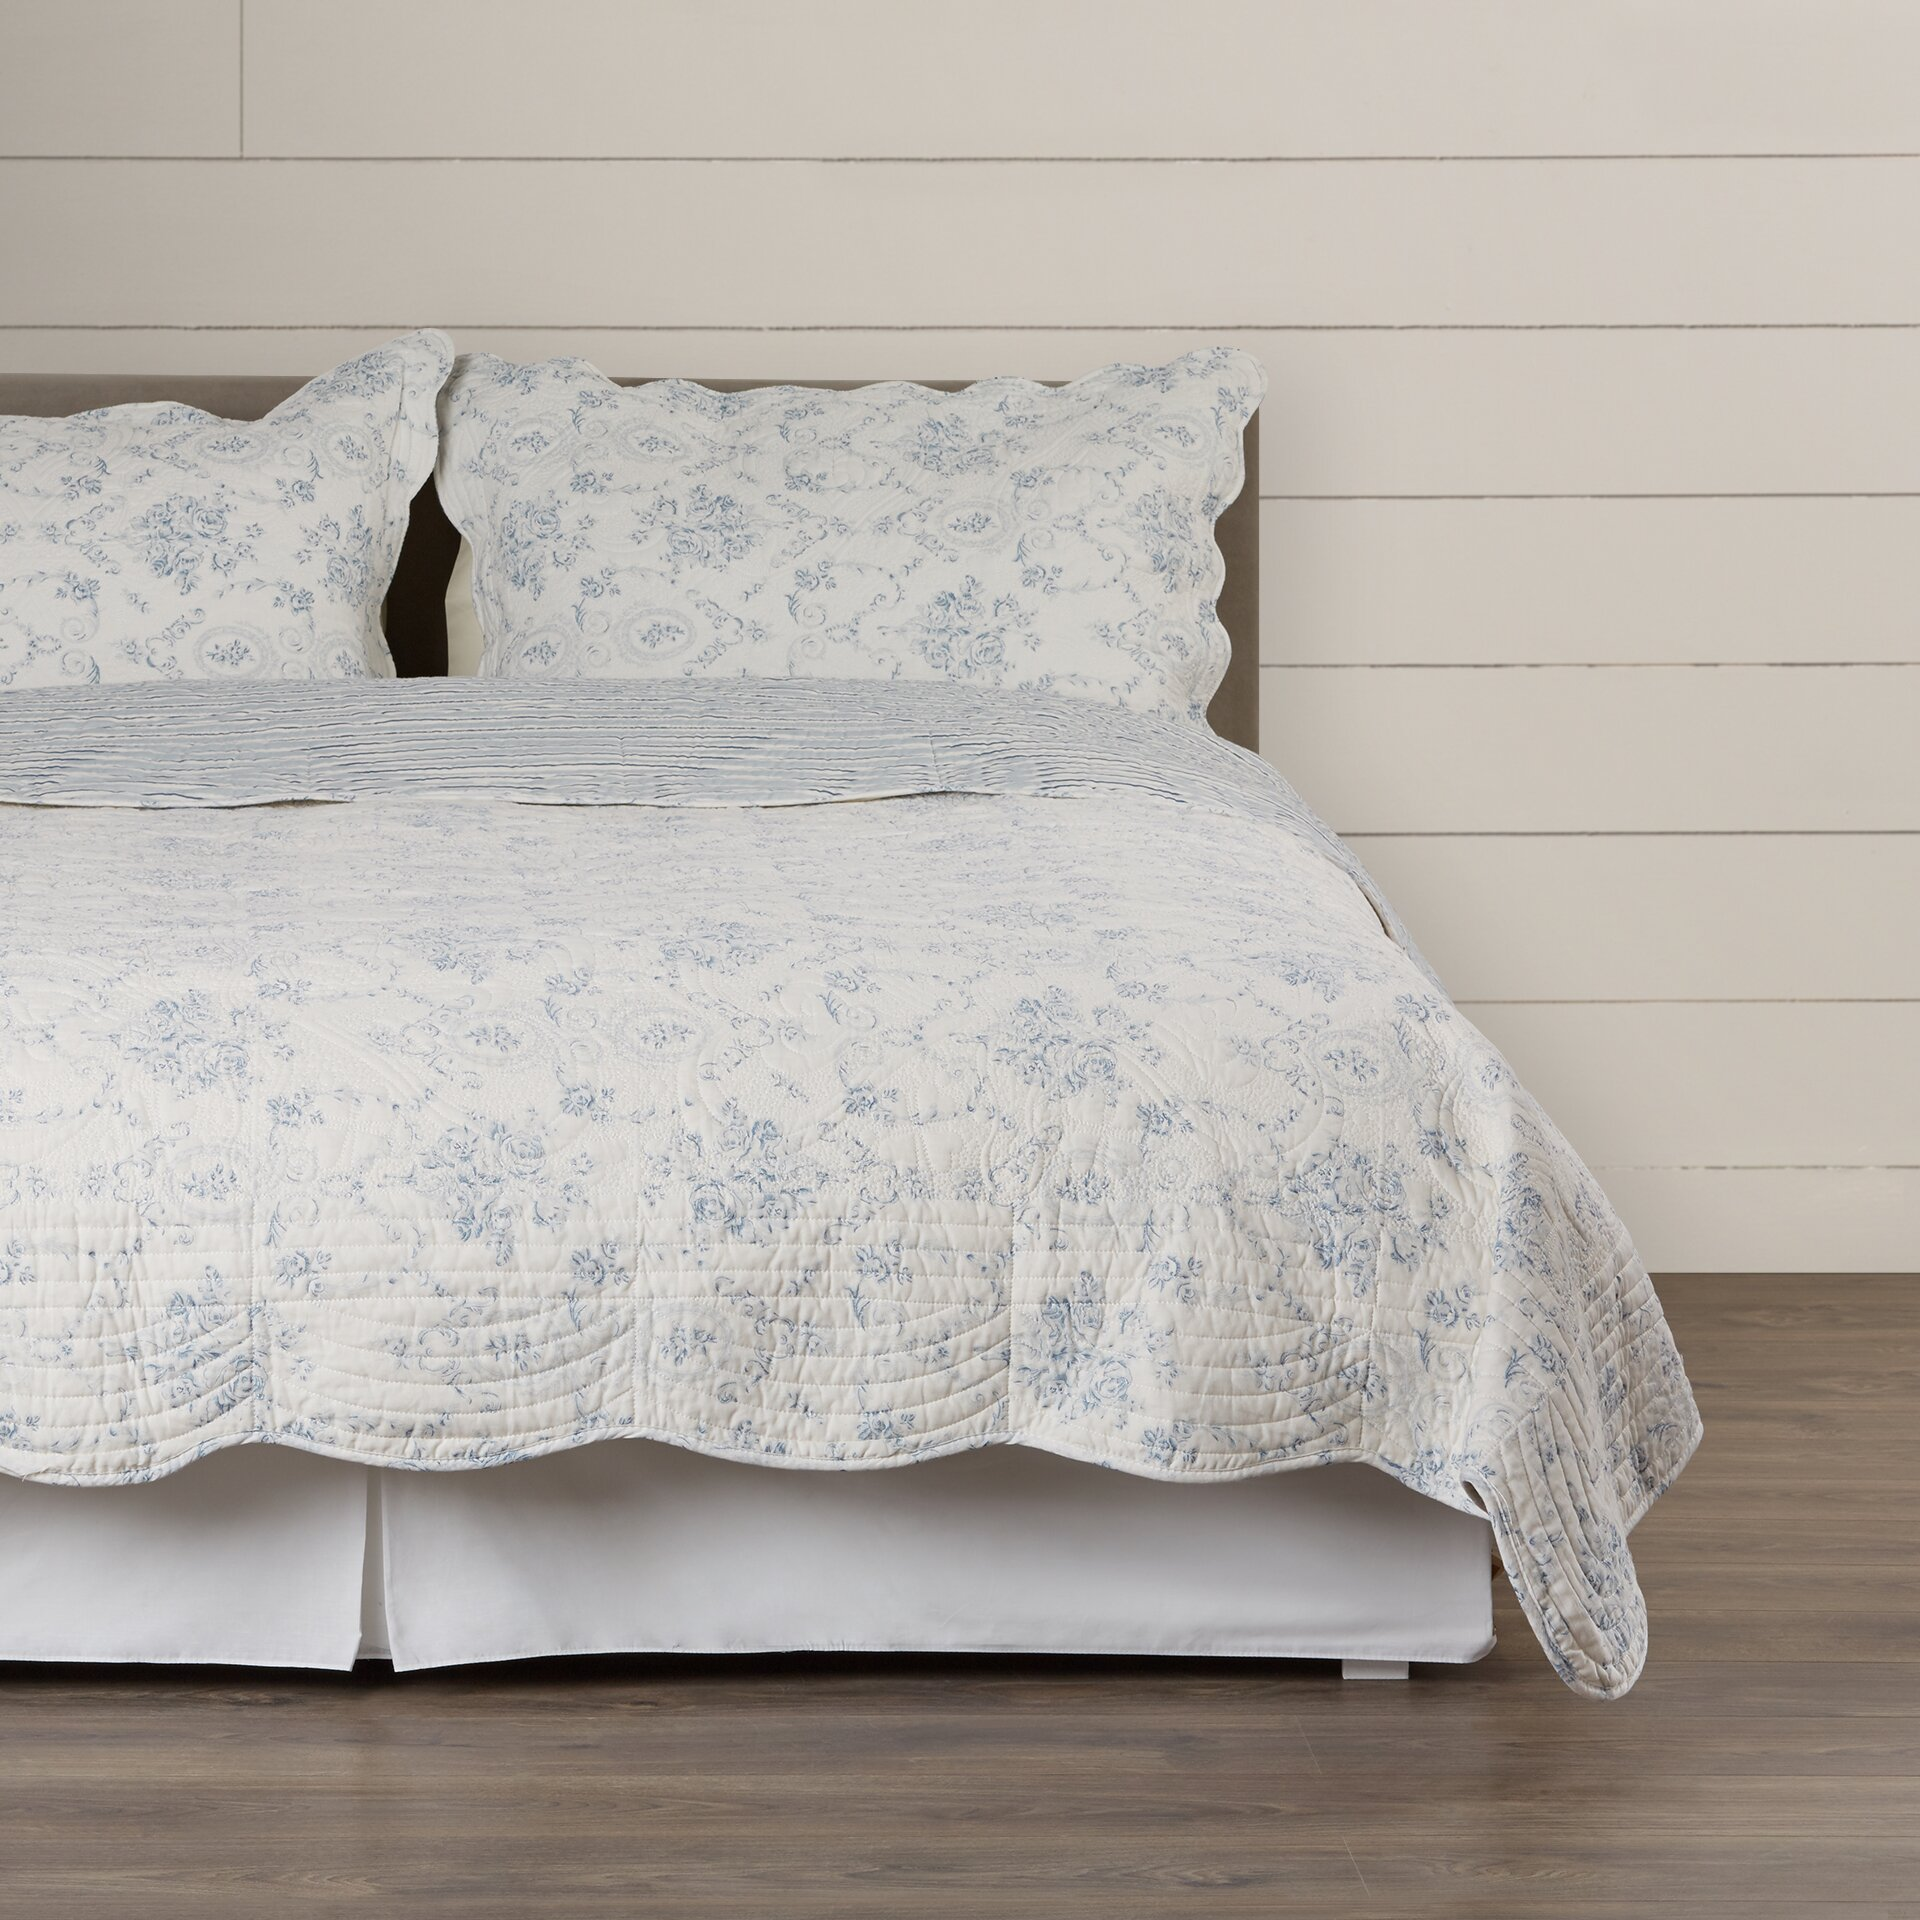 Lily Manor Gendreau Bedspread & Amp Reviews Wayfair Uk